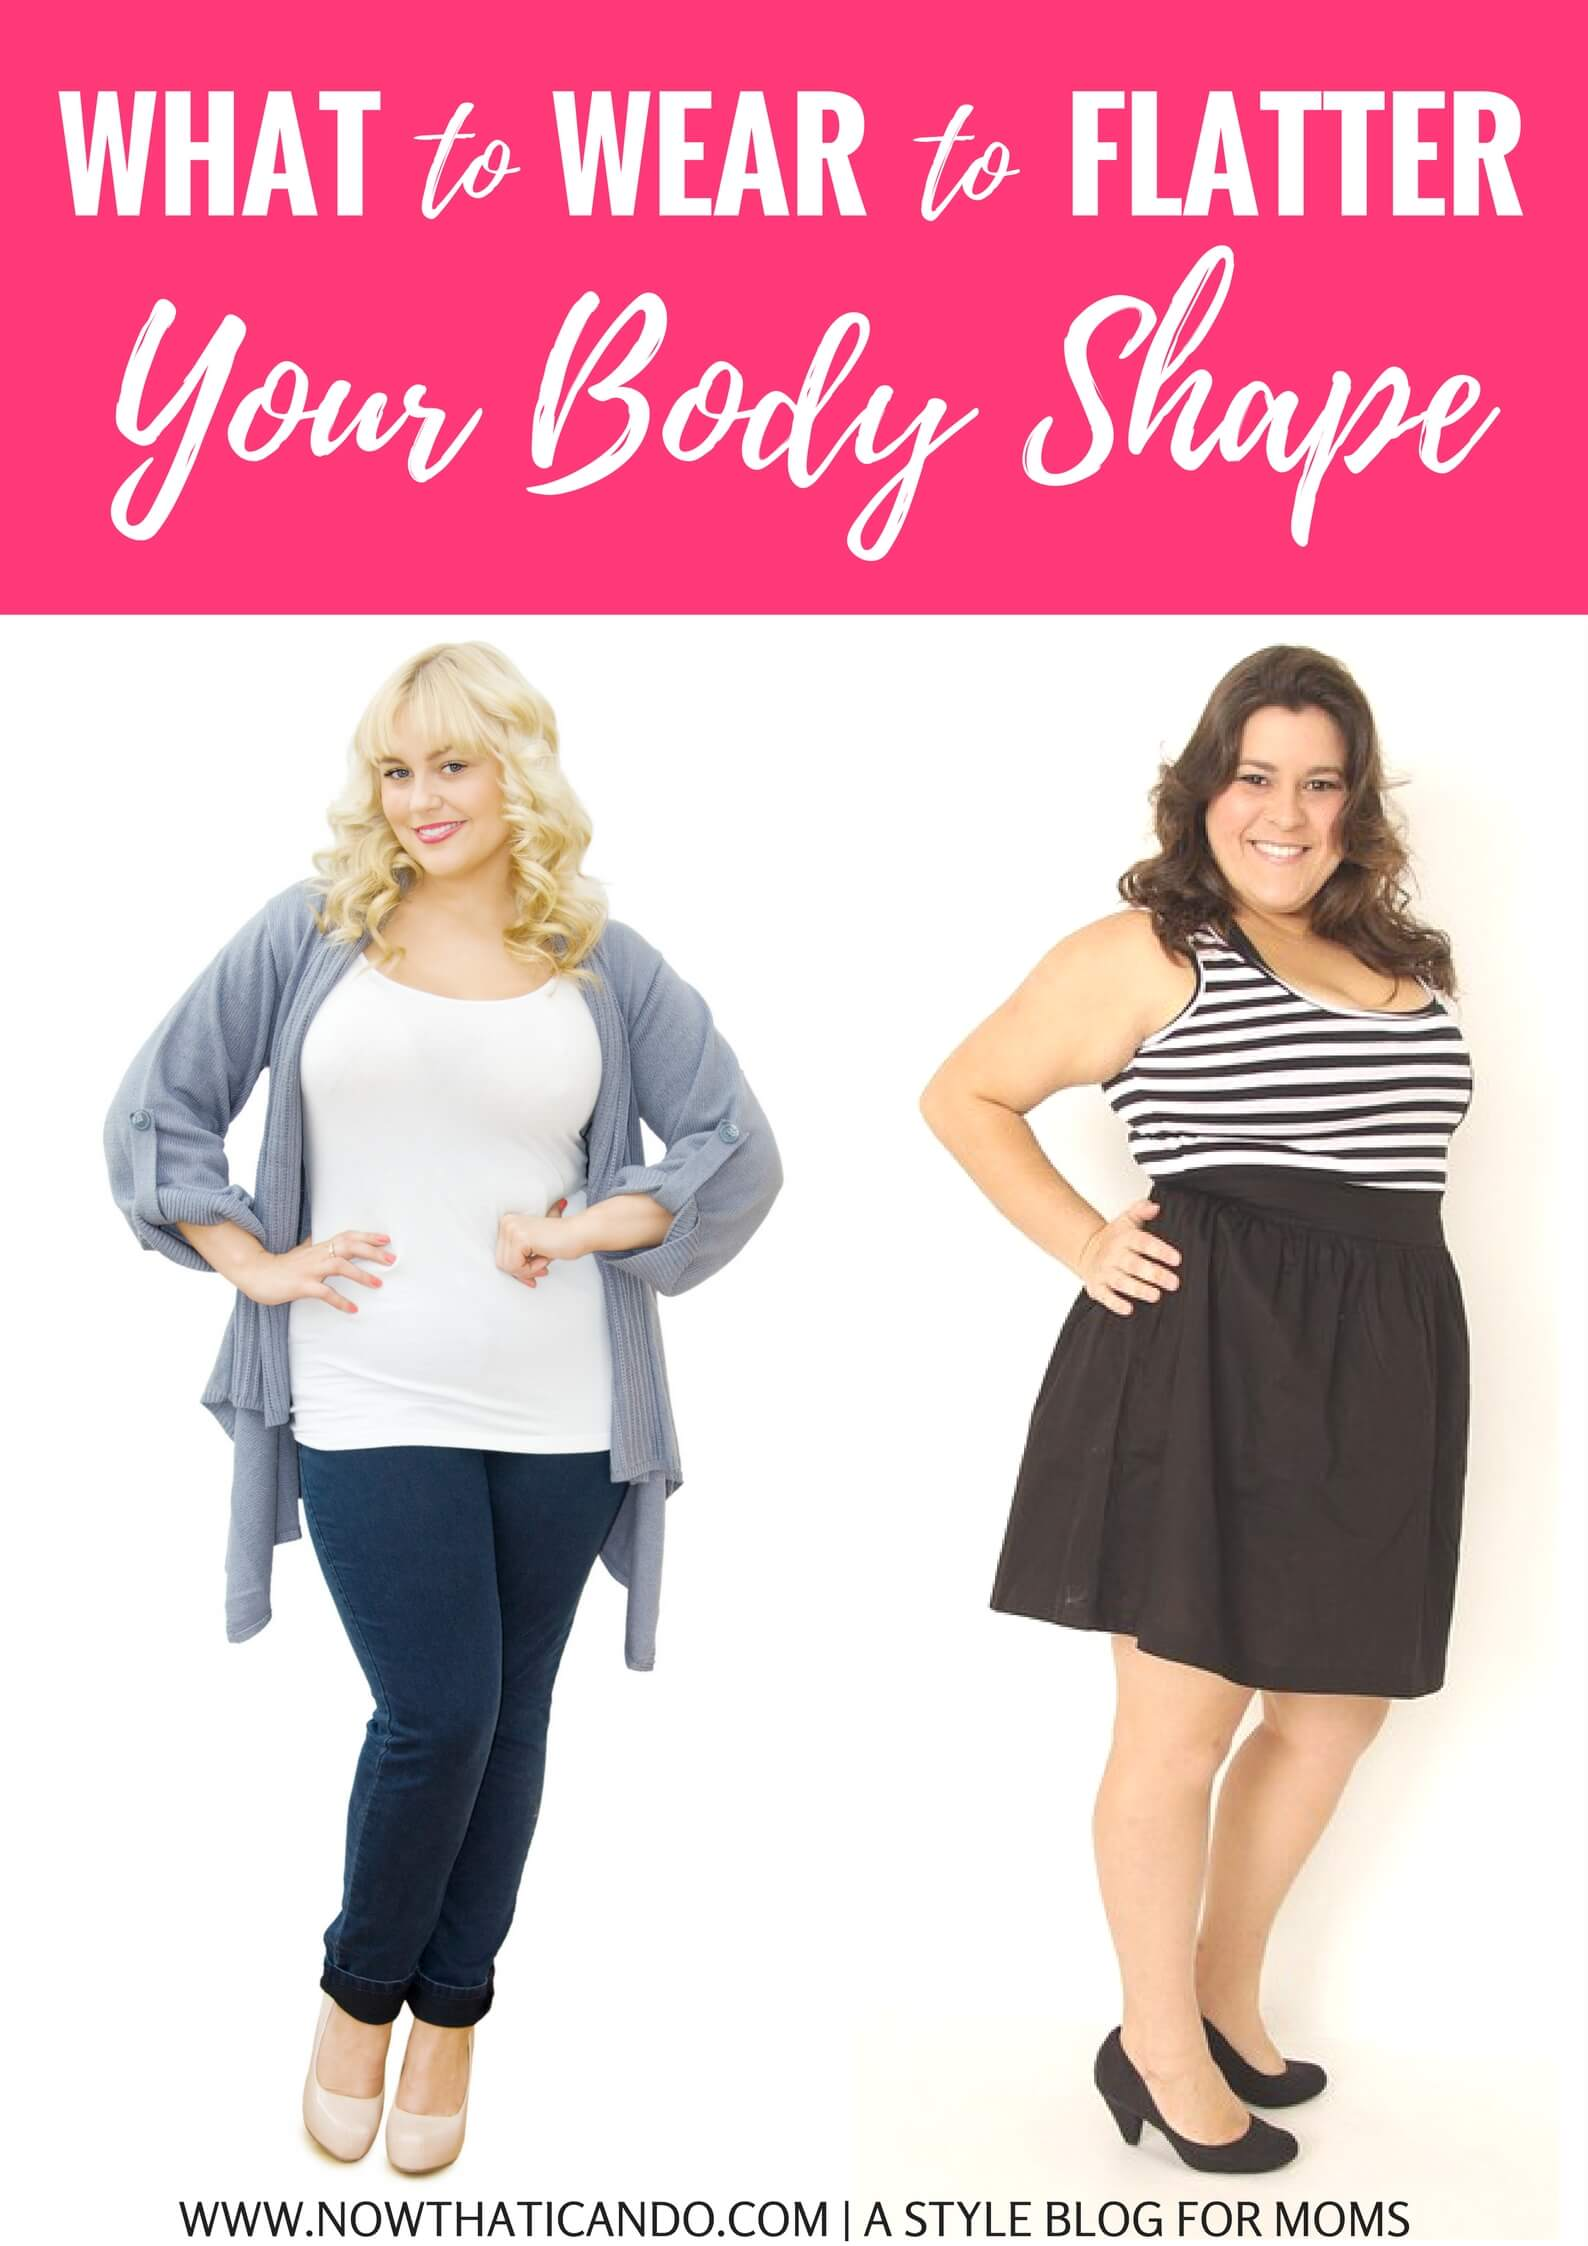 What to Wear to Flatter Your Body Shape (Are you a spoon body shape? Pear? Apple?)